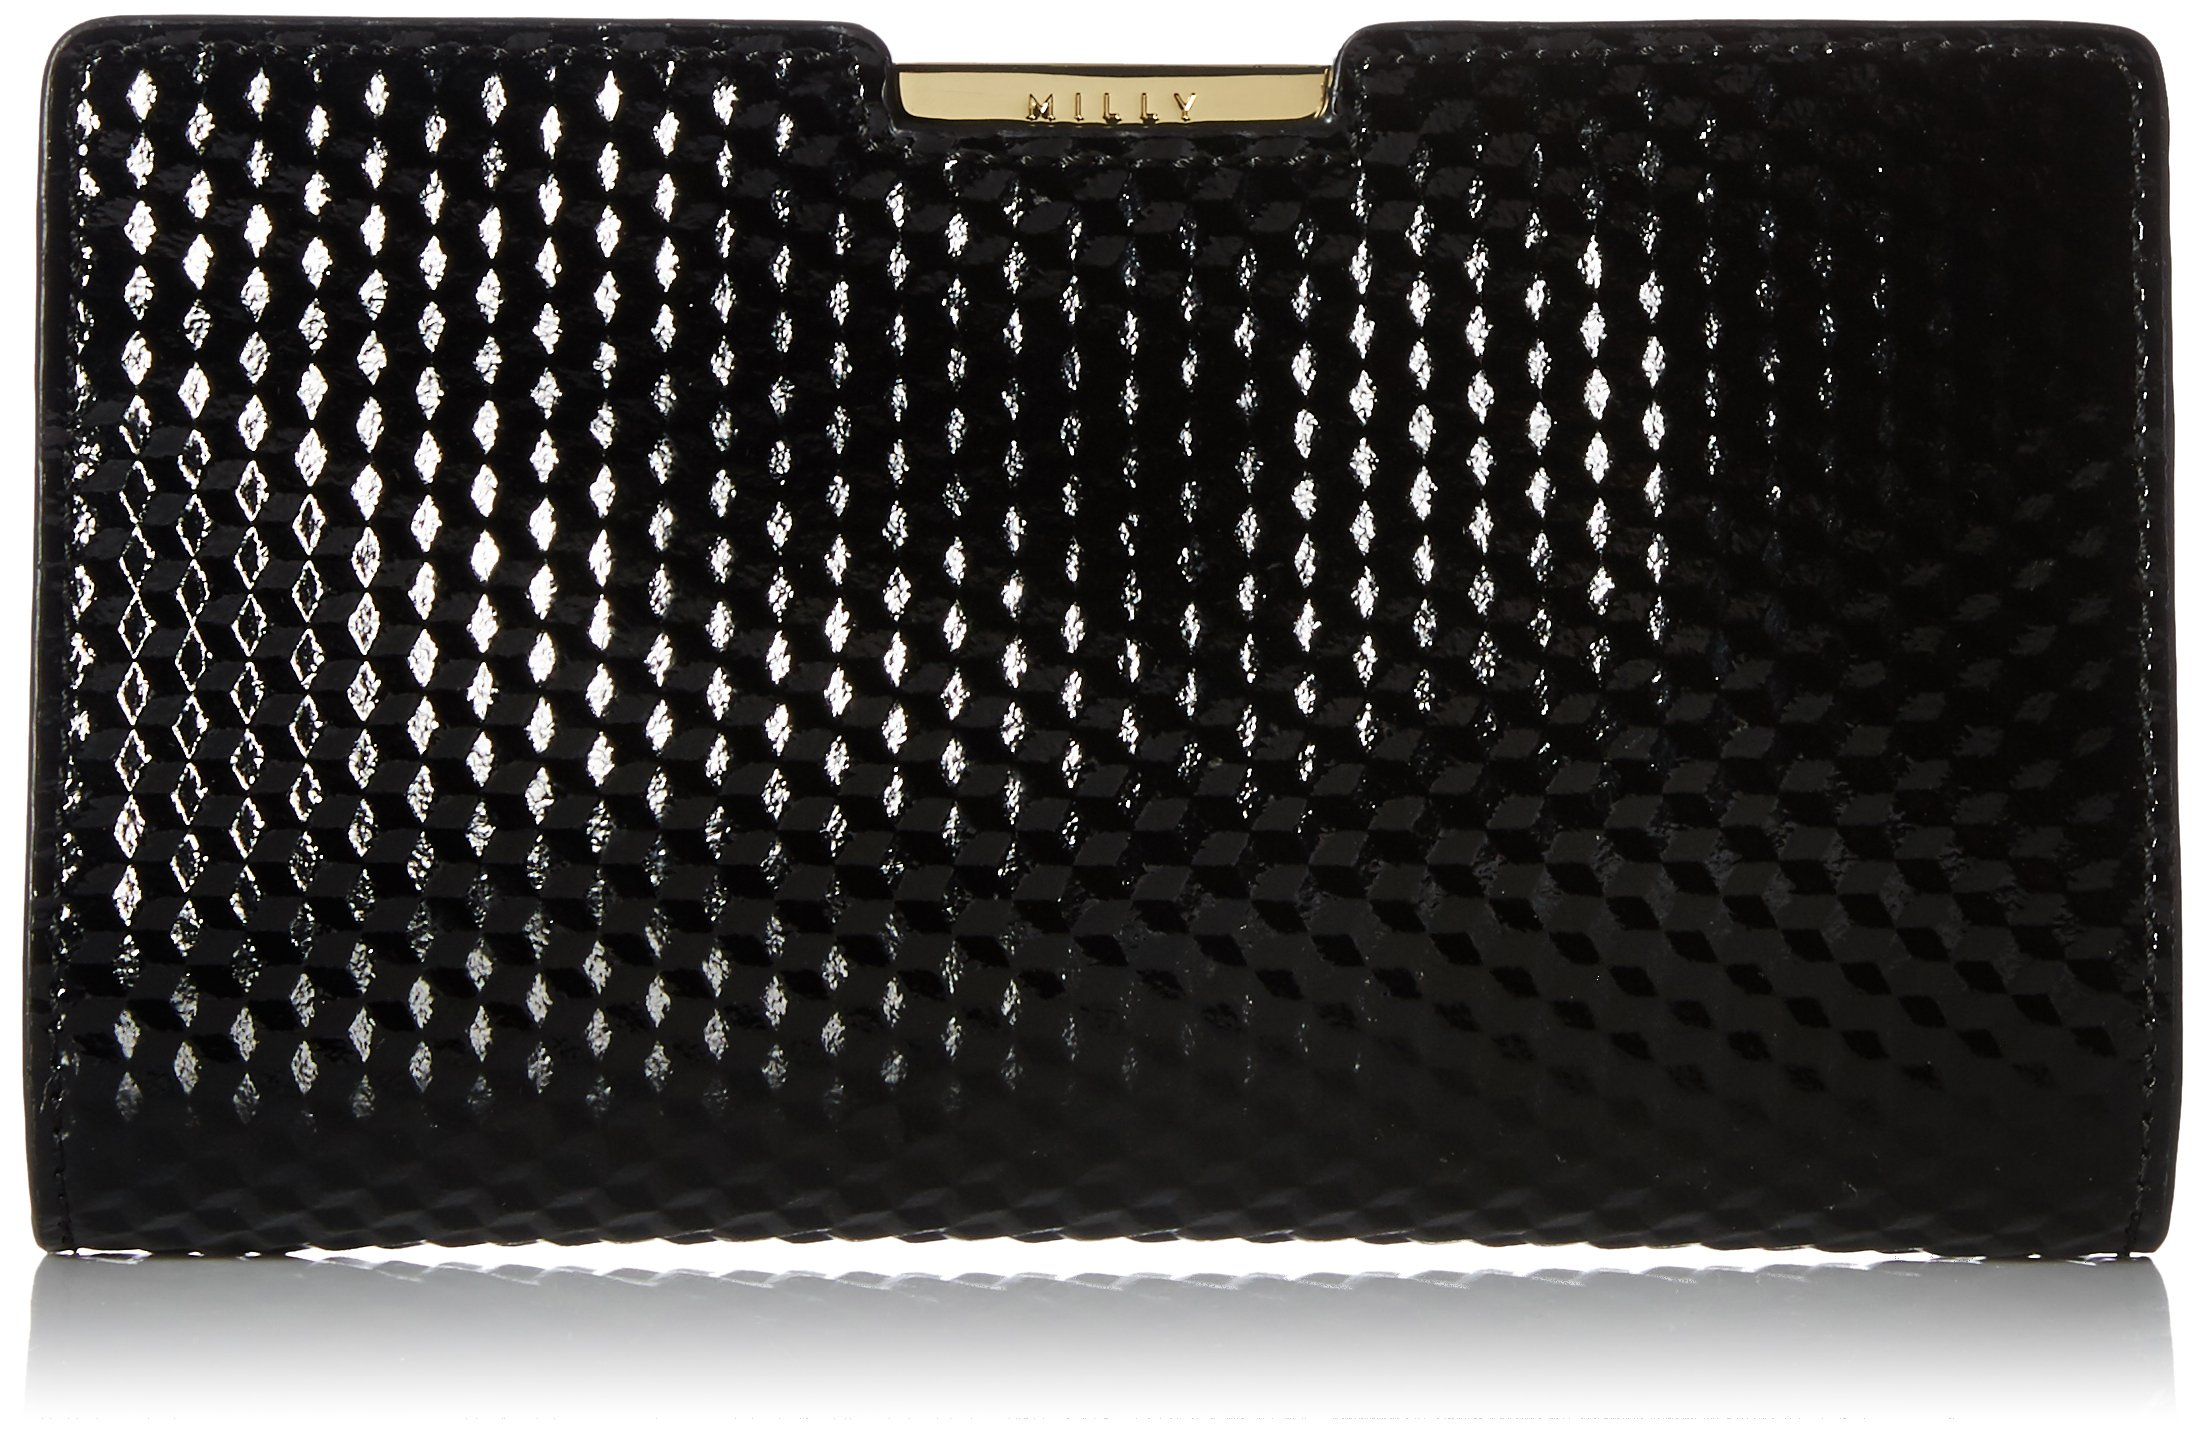 MILLY Geo Debossed Sm Frame Clutch, Black by MILLY